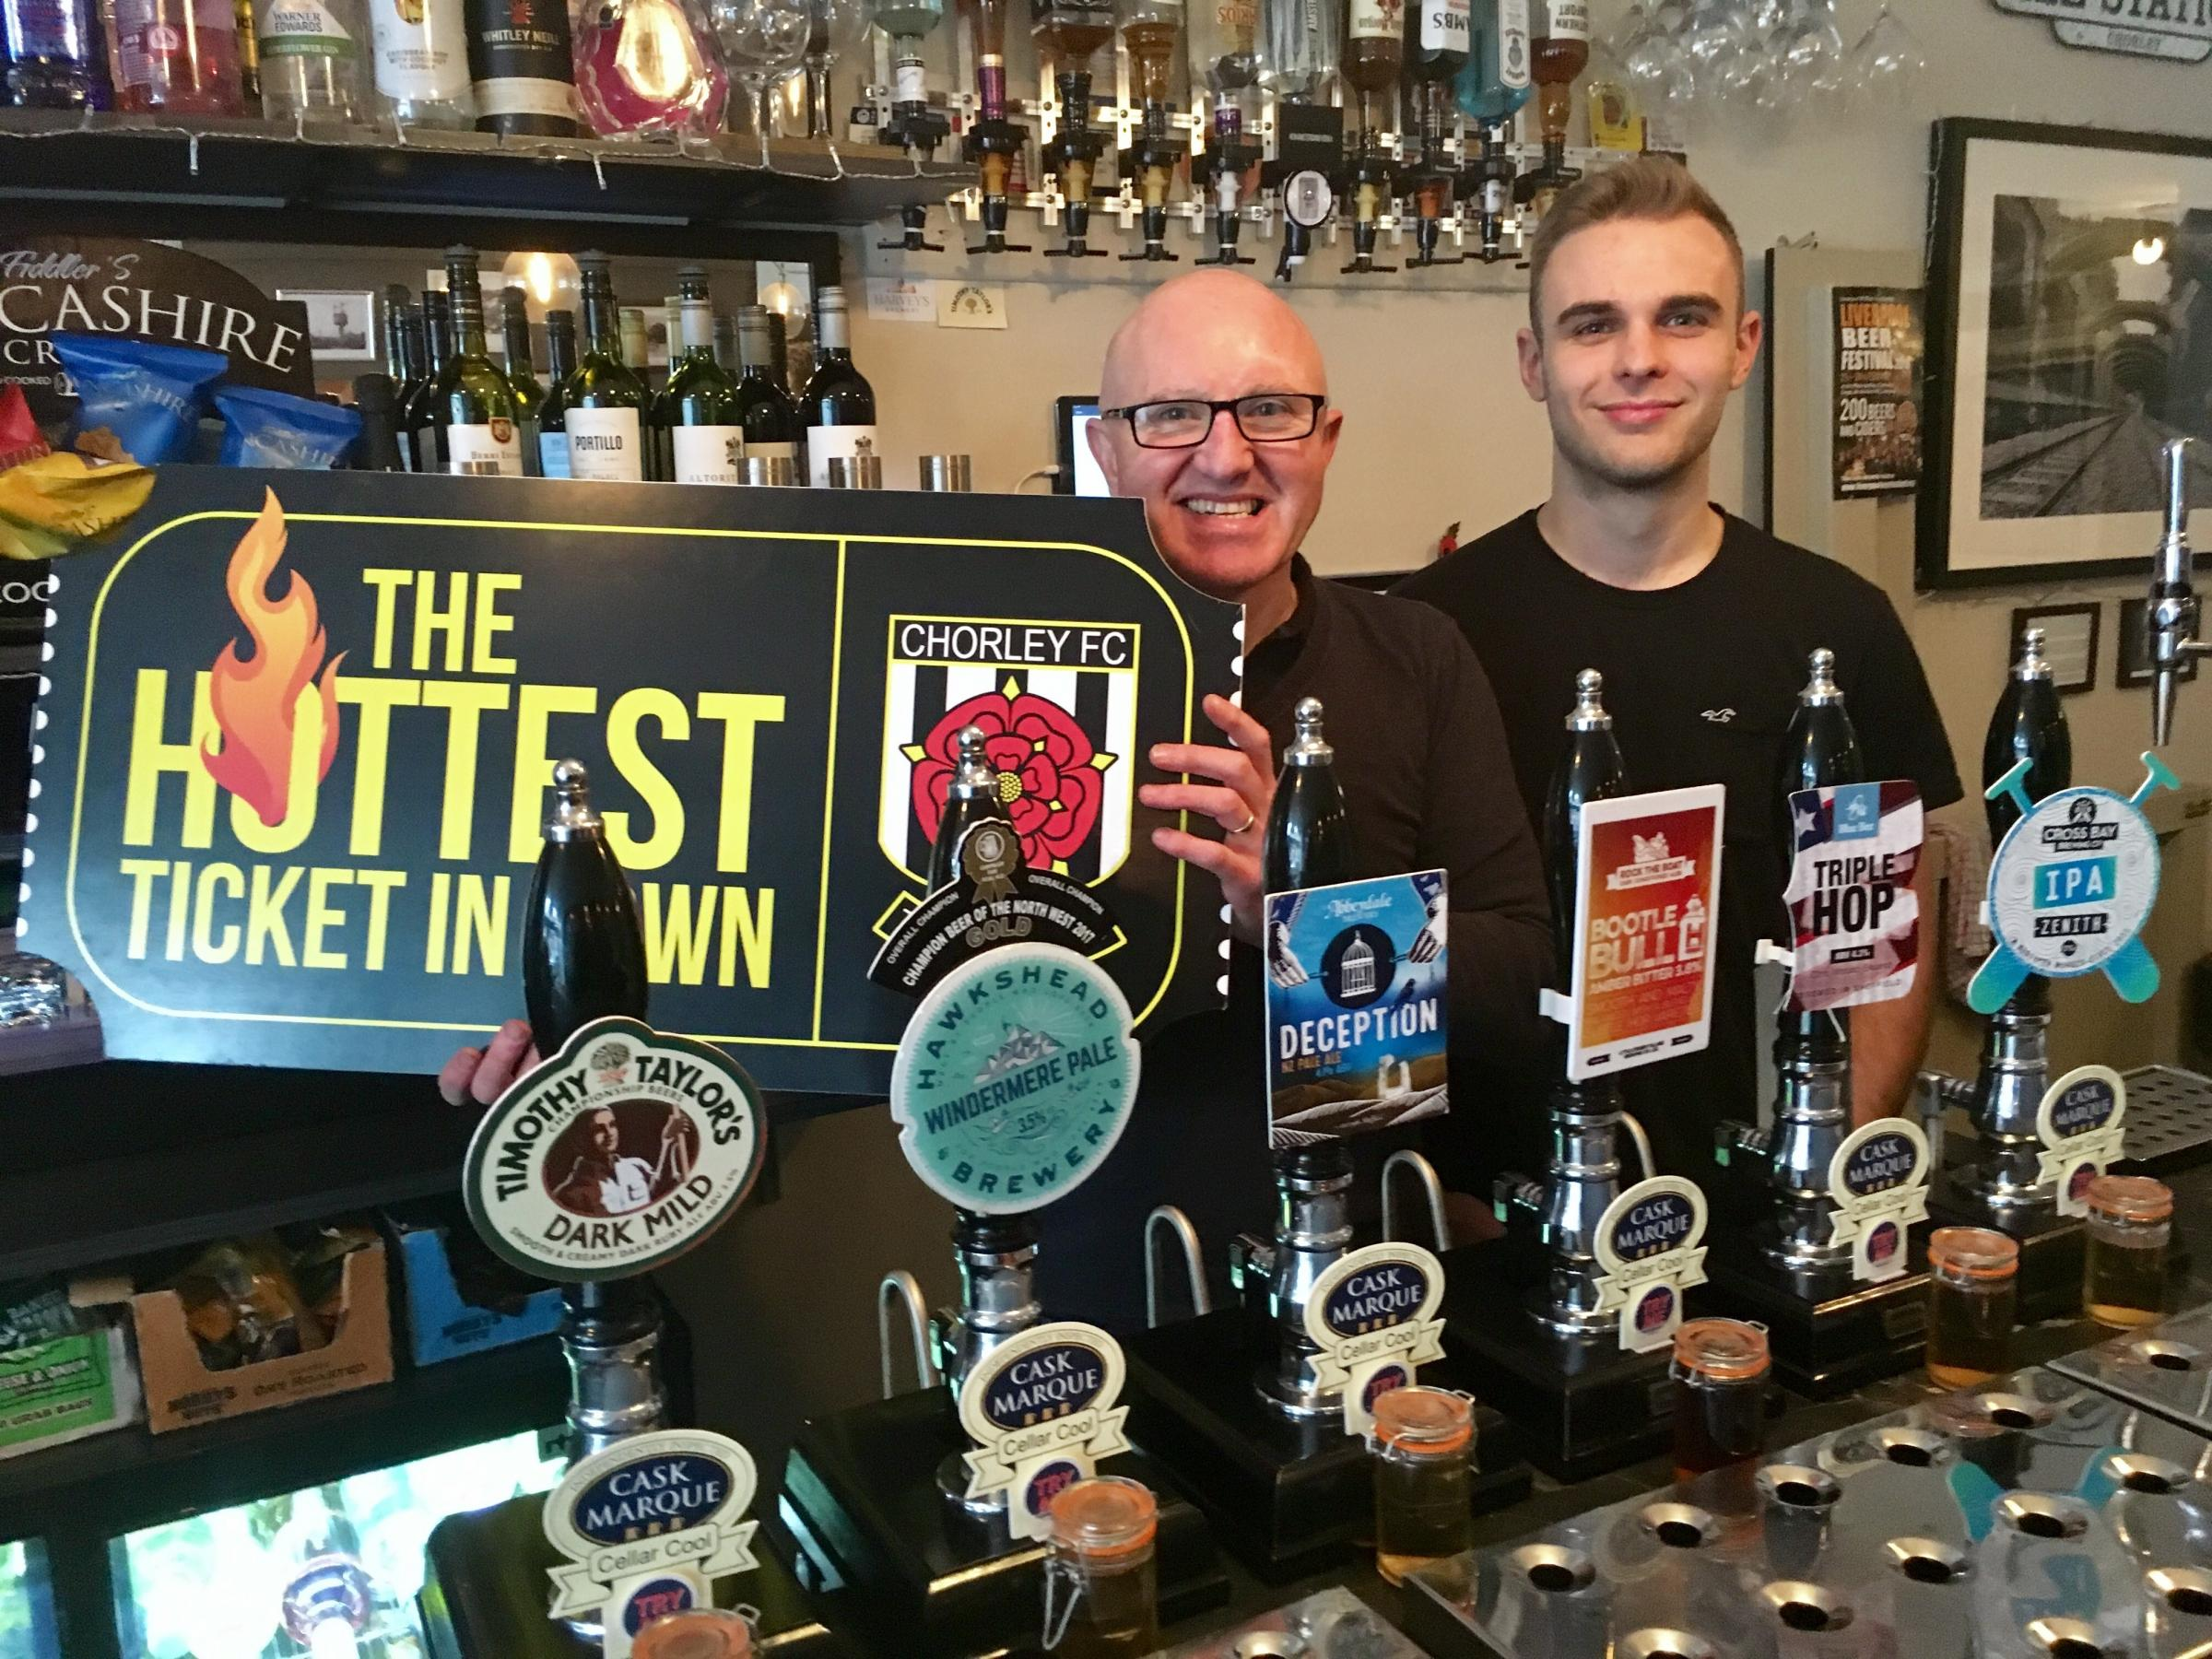 Mick Barker from The Ale Station - one of numerous businesses who've purchased a ticket